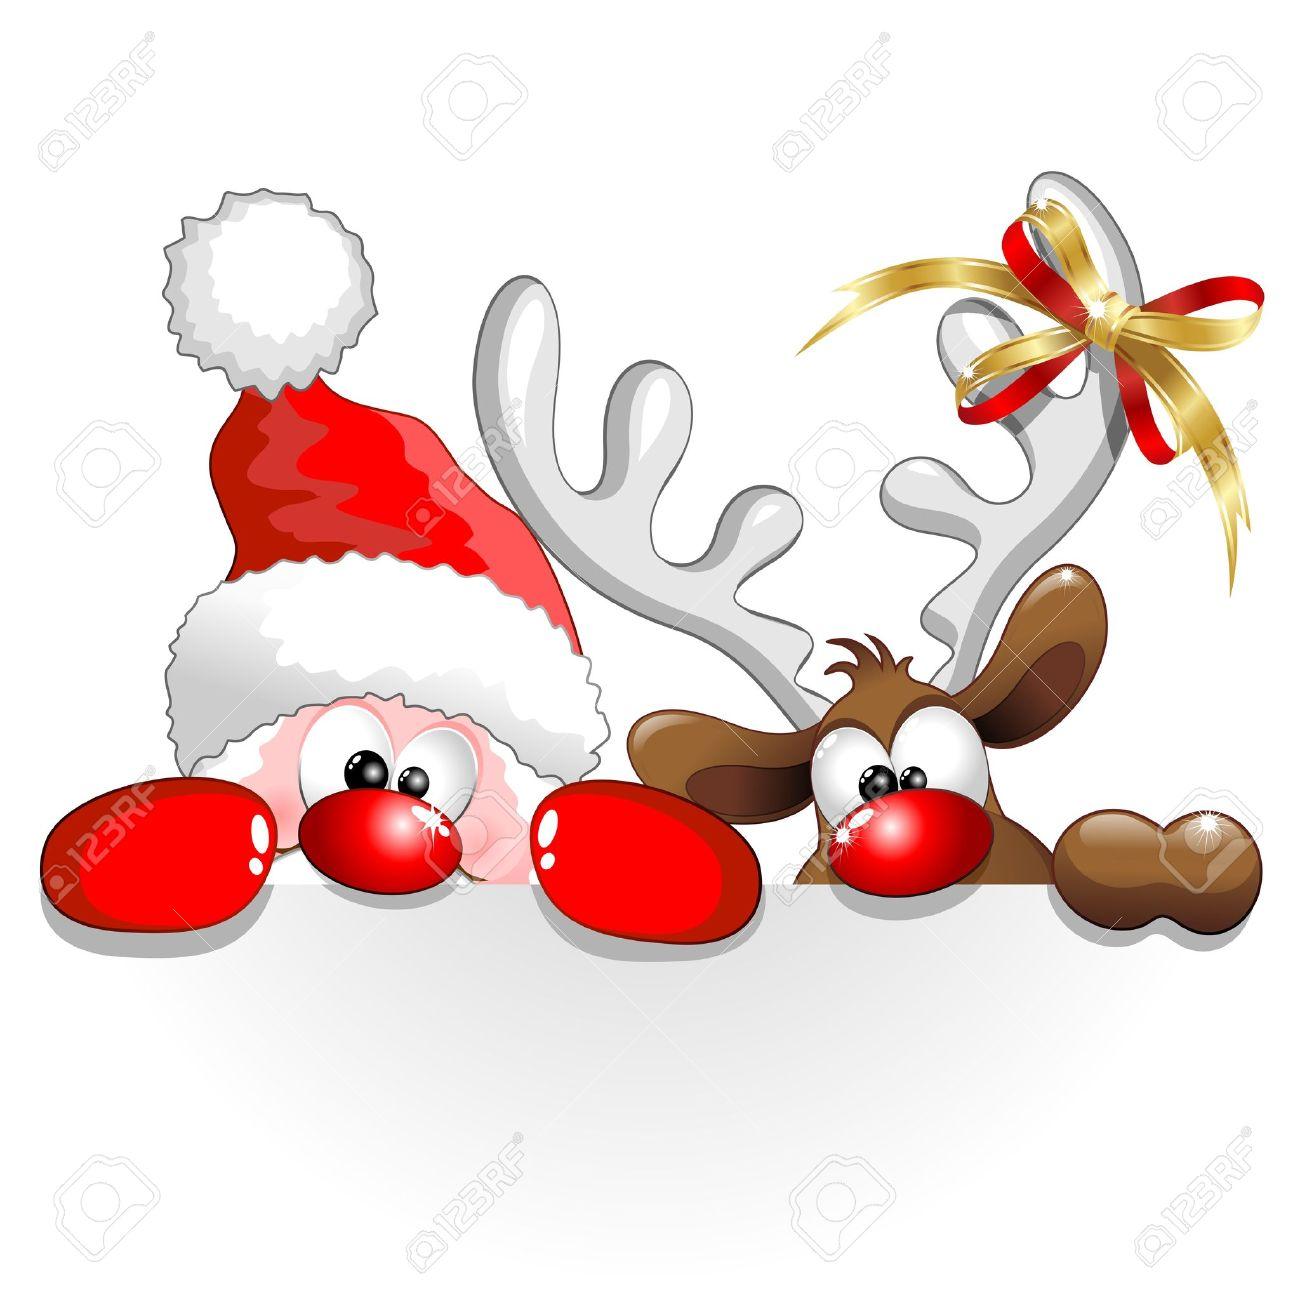 Funny Christmas Picture.Funny Christmas Santa And Reindeer Cartoon